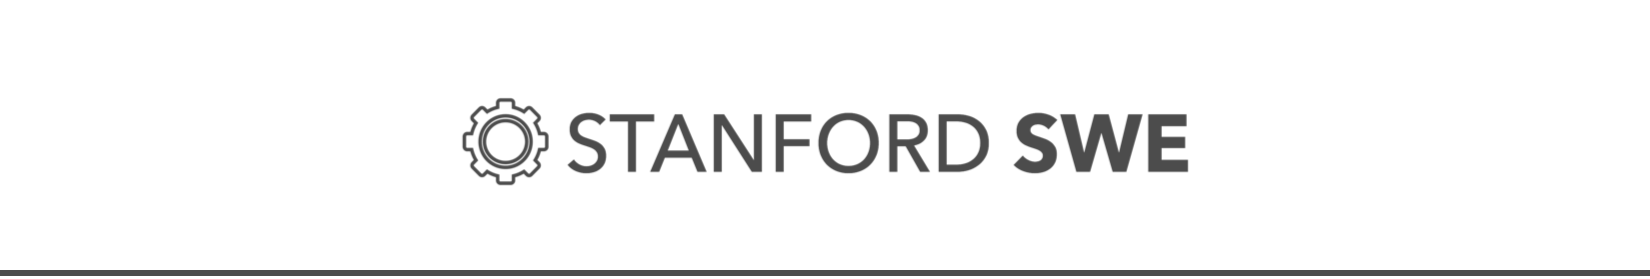 Stanford Society of Women Engineers